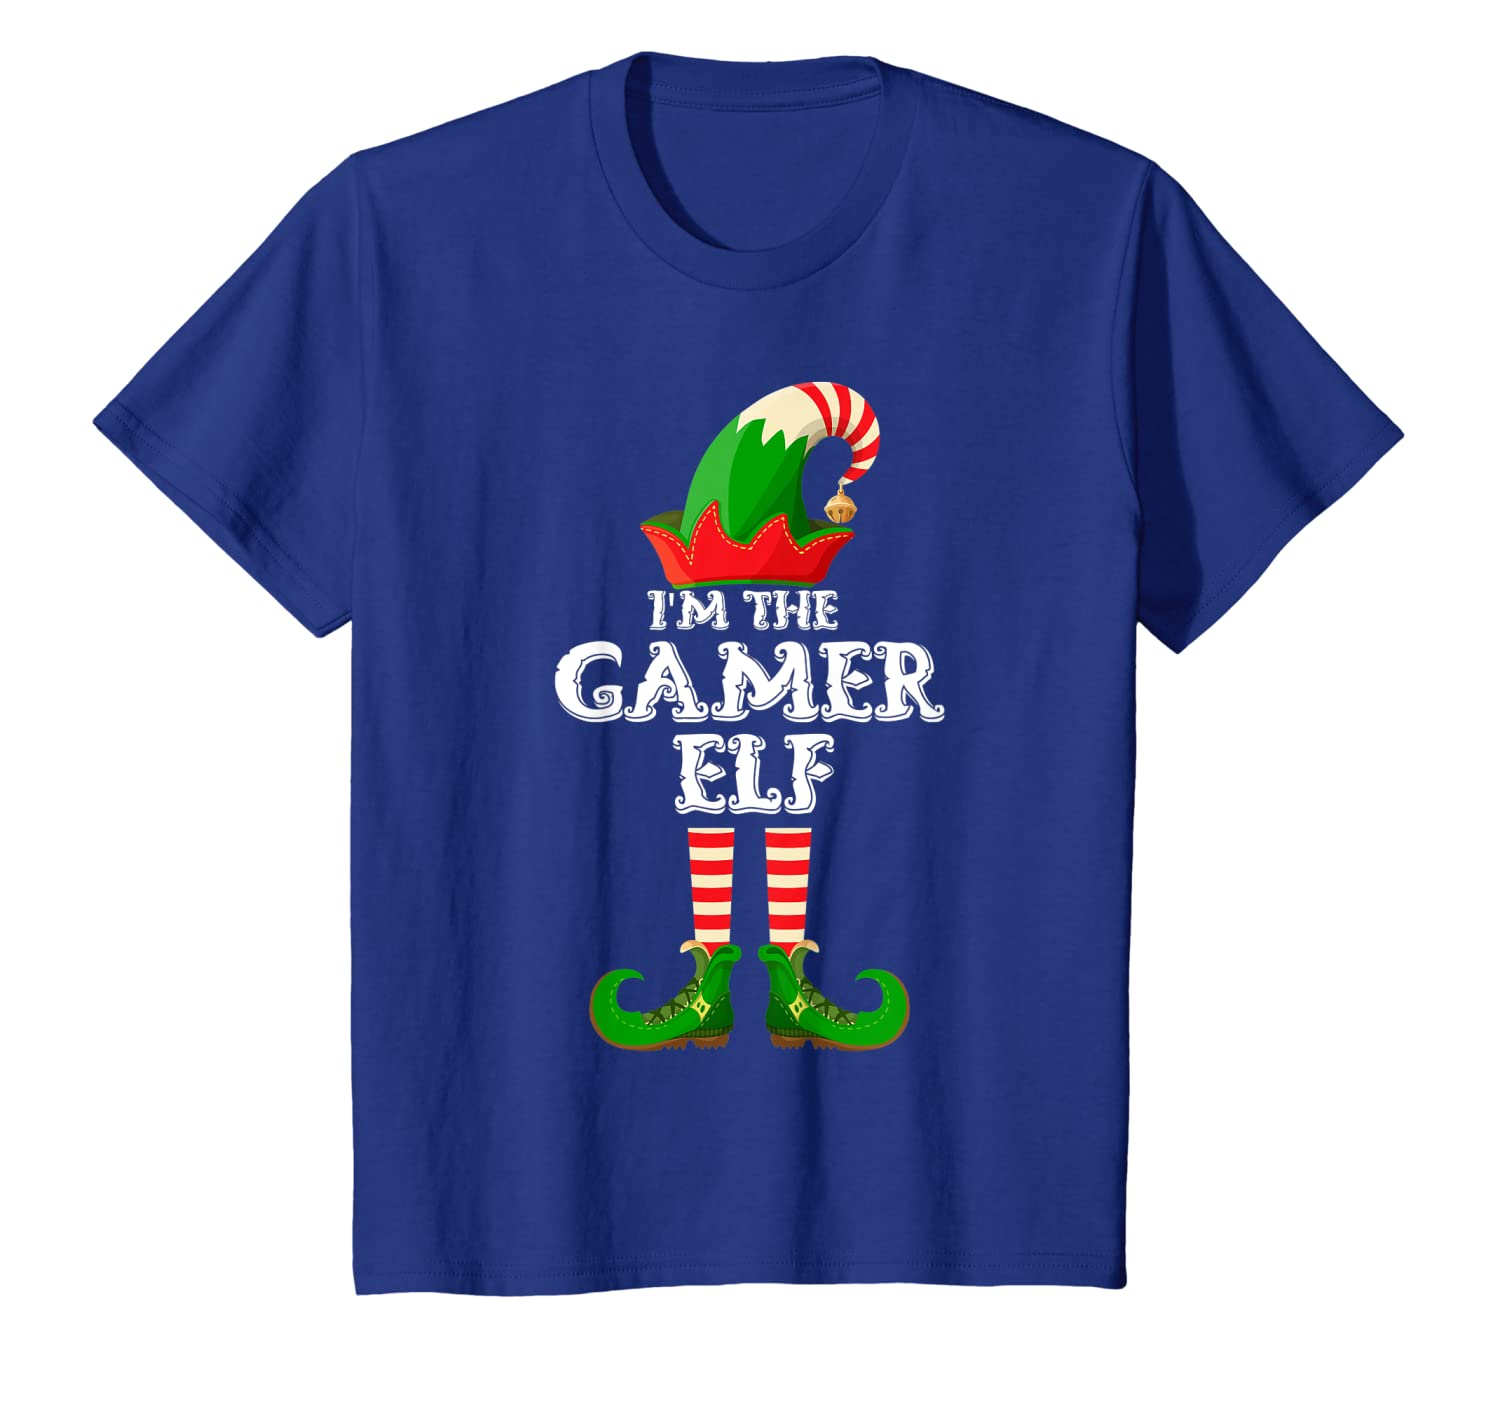 The Gamer Elf – Funny Matching Family Group Christmas Gifts T-Shirt